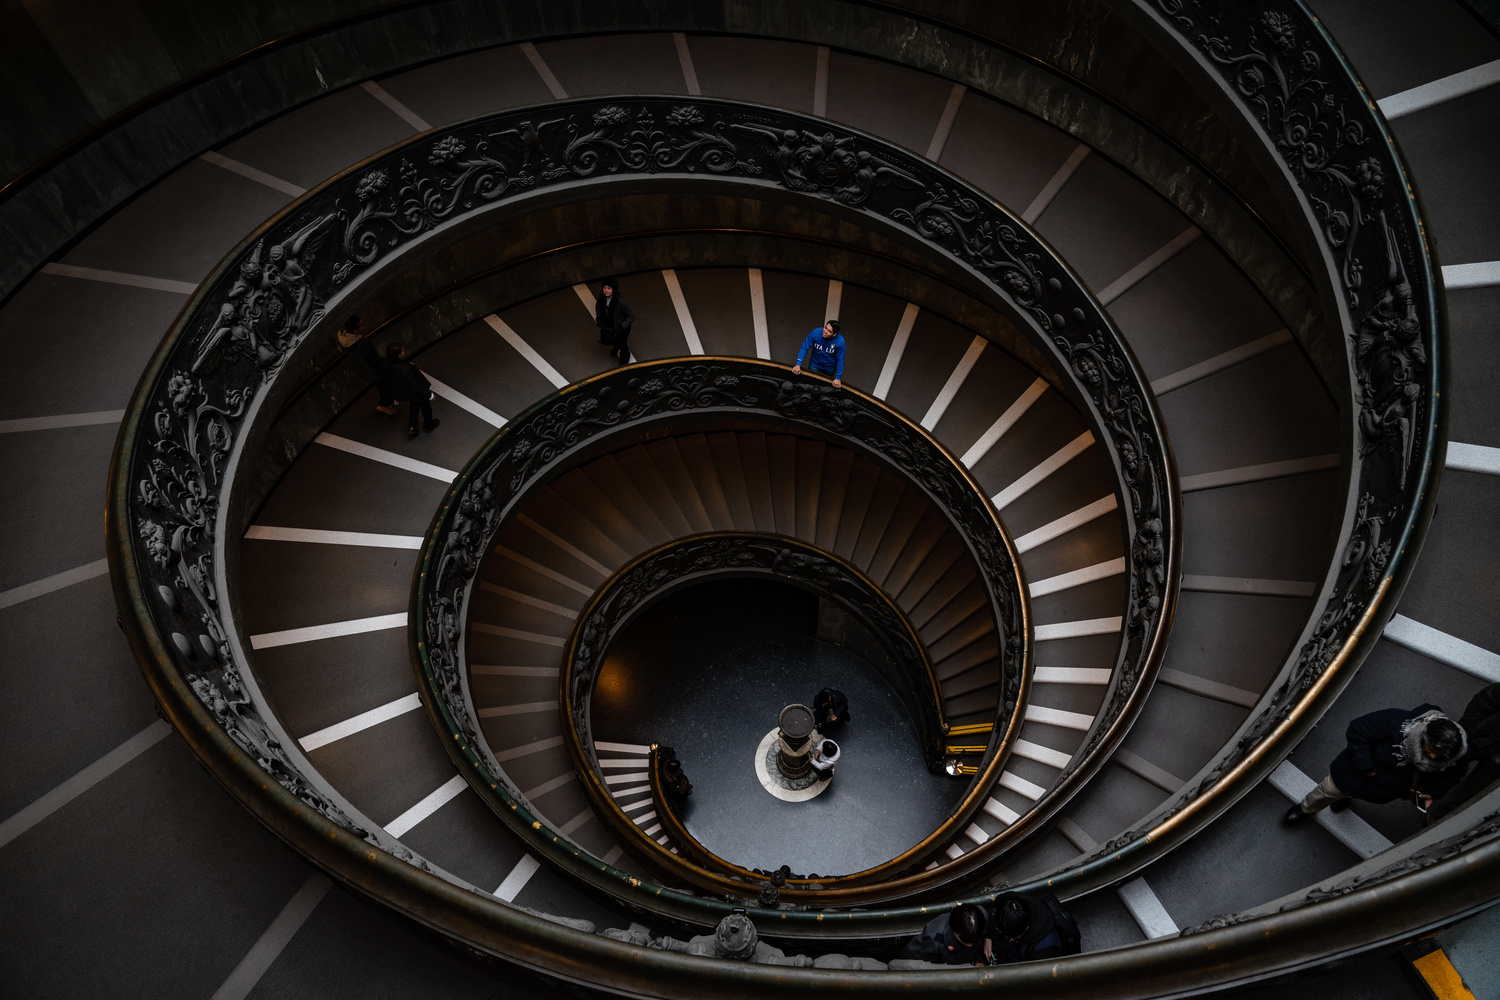 The Vatican Museum Exit by Dylan Zoebelein